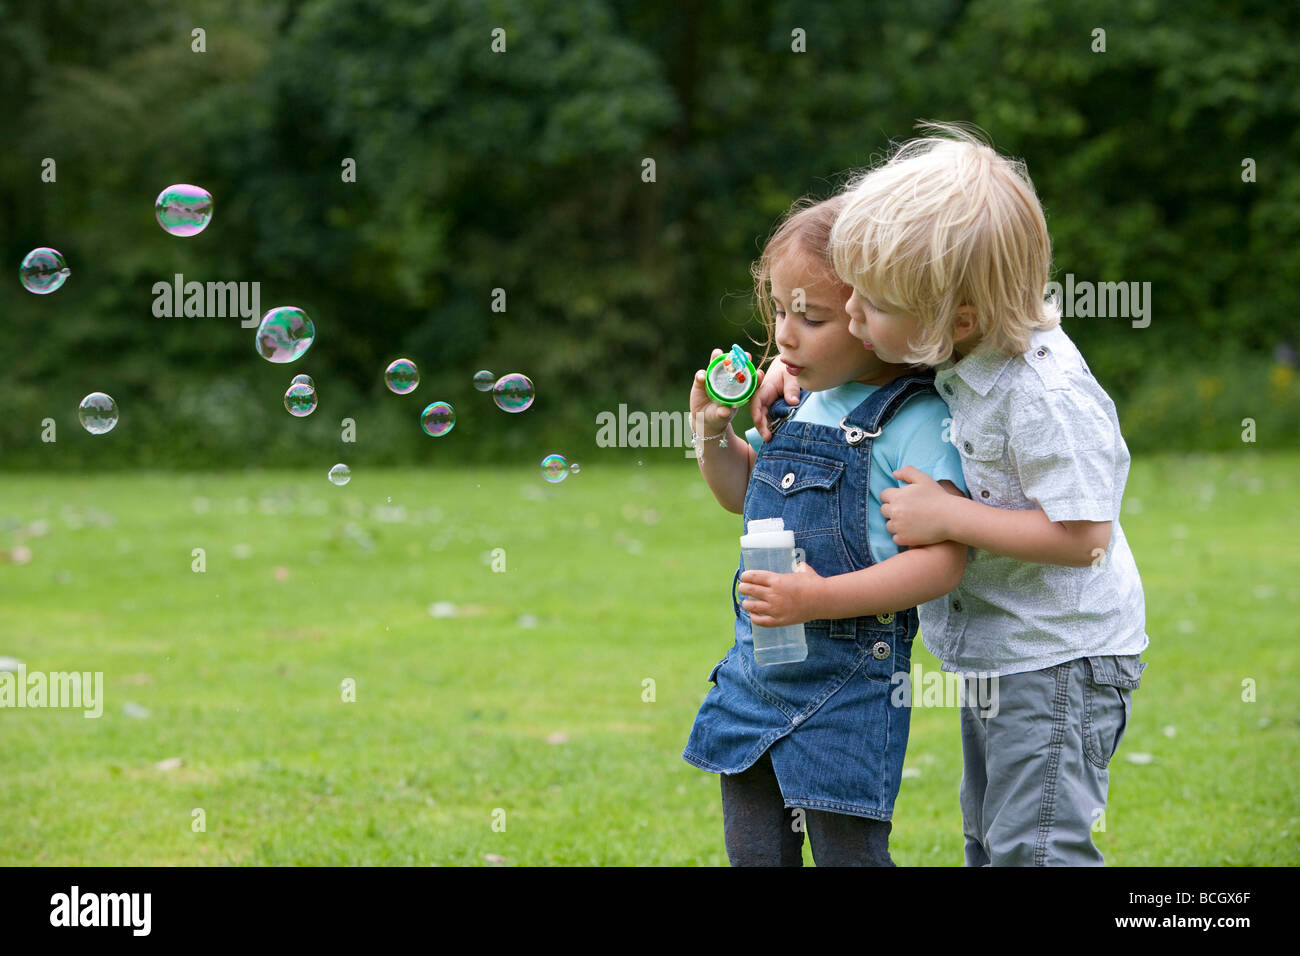 Deux bambins blowing bubbles Photo Stock